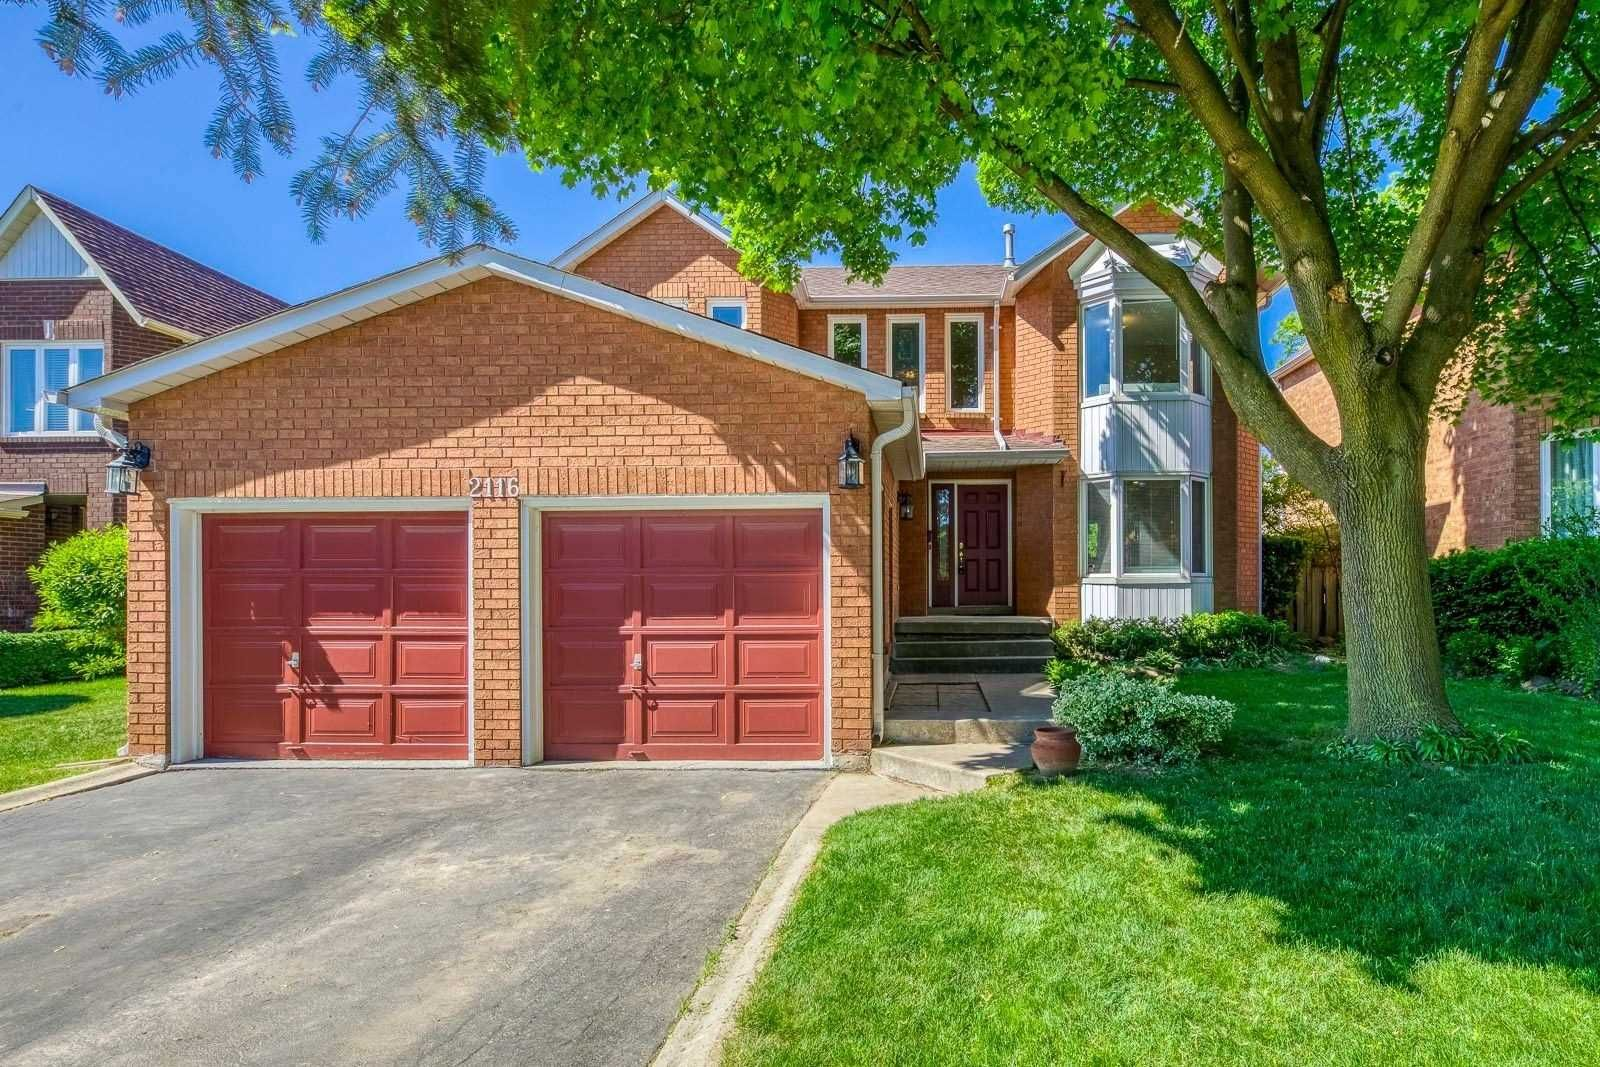 Main Photo: 2116 Eighth Line in Oakville: Iroquois Ridge North House (2-Storey) for sale : MLS®# W5251973